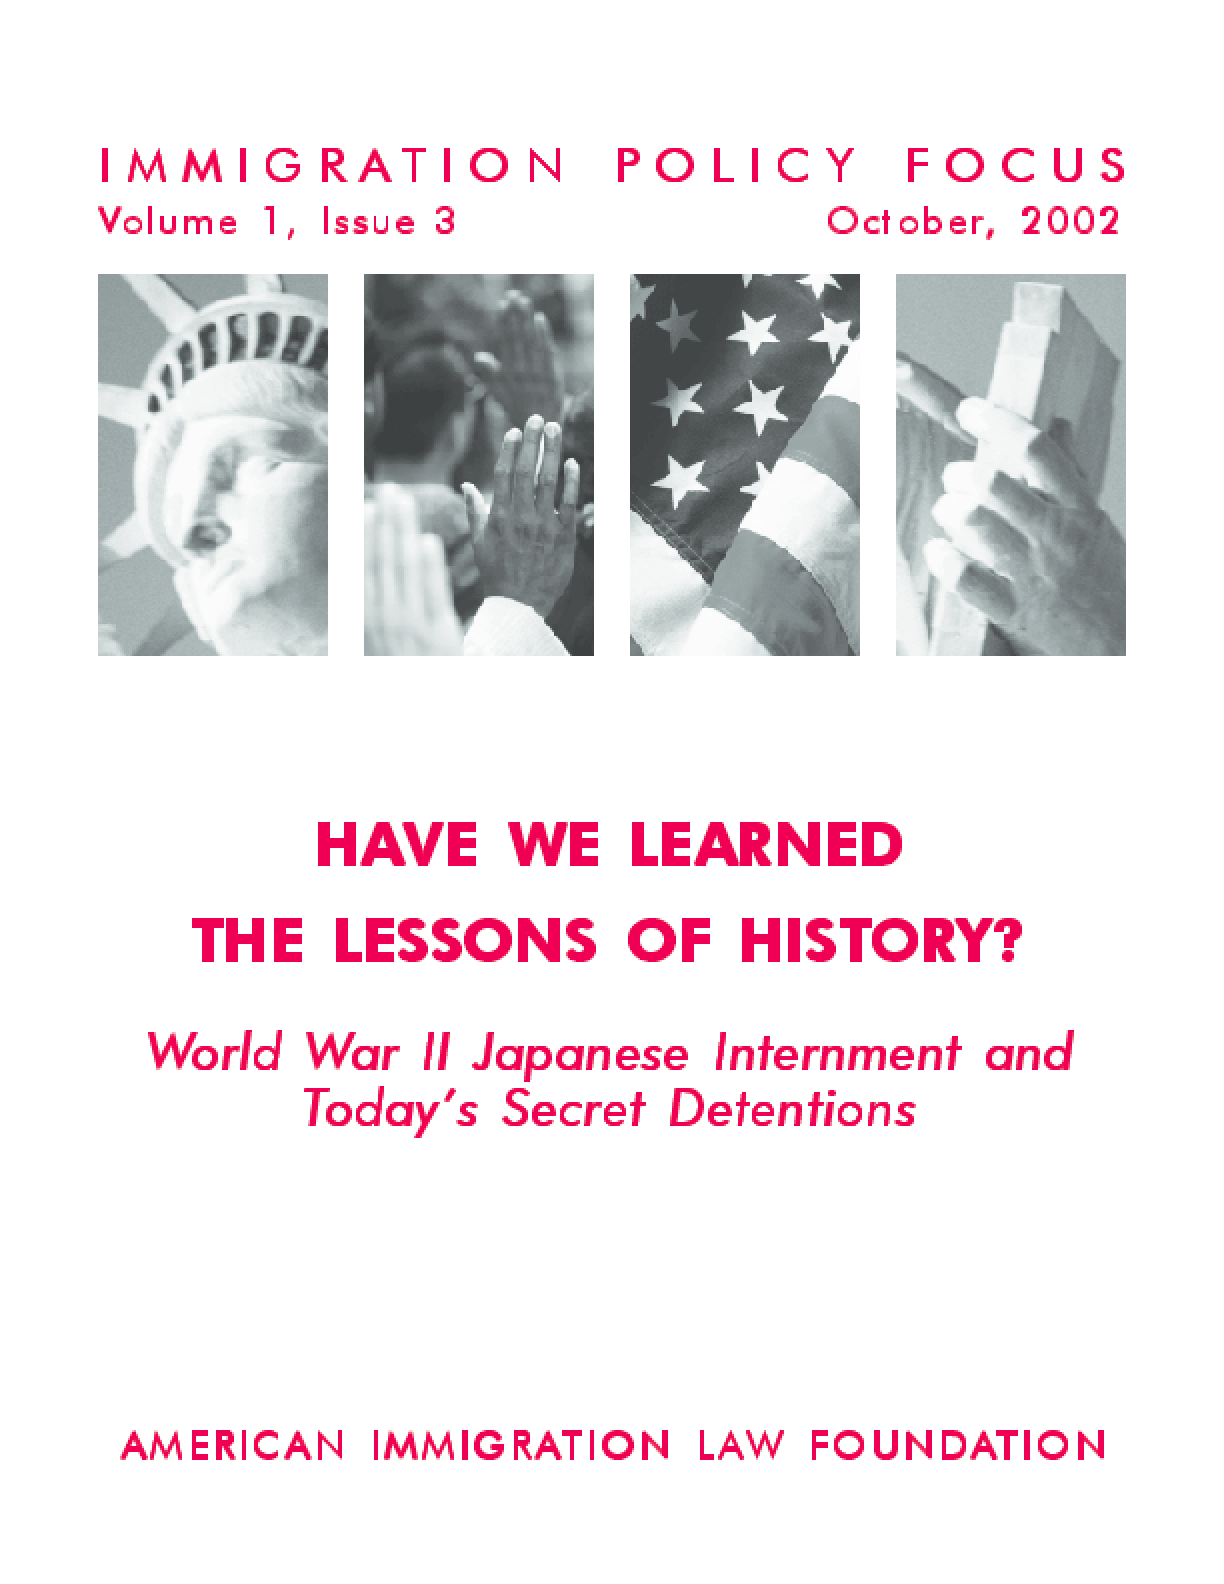 Have We Learned the Lessons of History? World War II Japanese Internment &Today's Secret Detentions